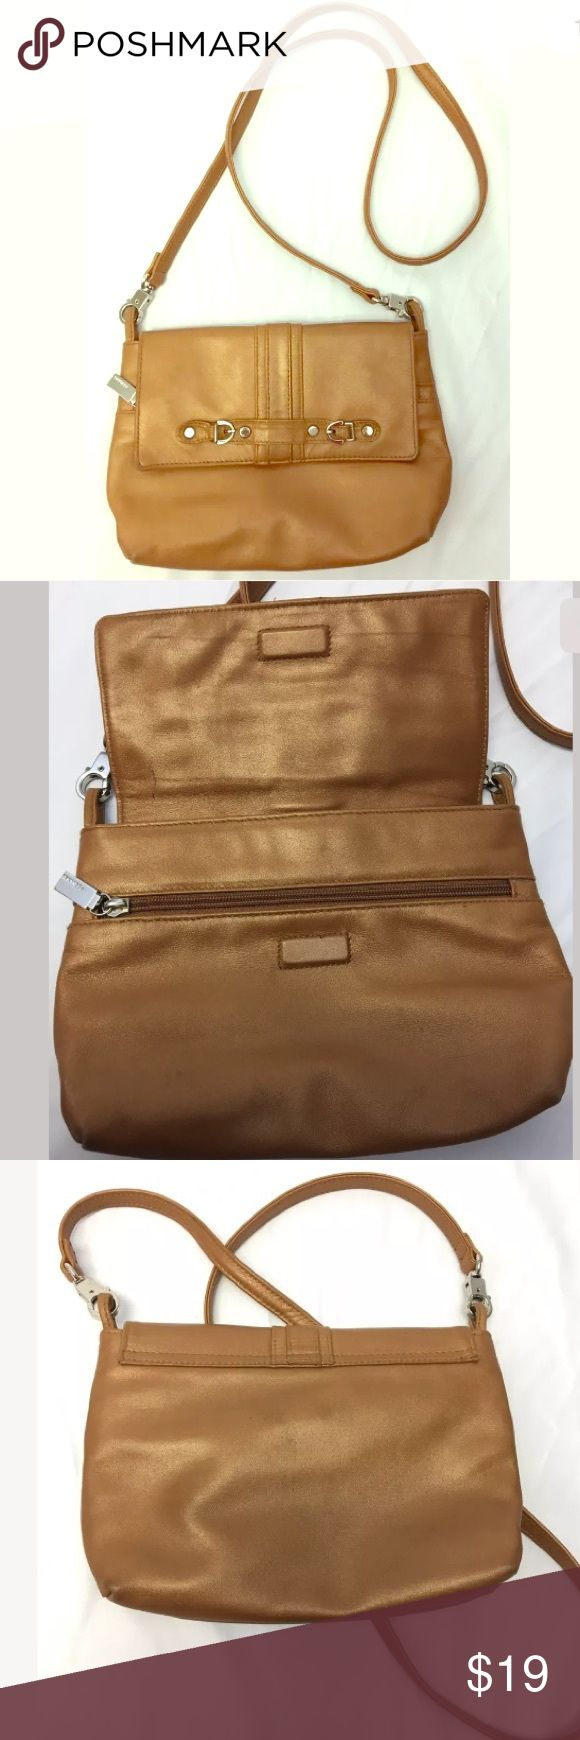 """Perlina Leather Shoulder Bag Vintage Perlina Camel Brown Tan Tone Leather Shoulder Bag Purse; Gently used condition with minor corner wear and small pen mark to inside top flap- see last photo for details; cute small sized bag! Measures approx 6-1/2"""" tall, 9"""" long with a 23"""" strap drop; Perlina Bags Shoulder Bags"""